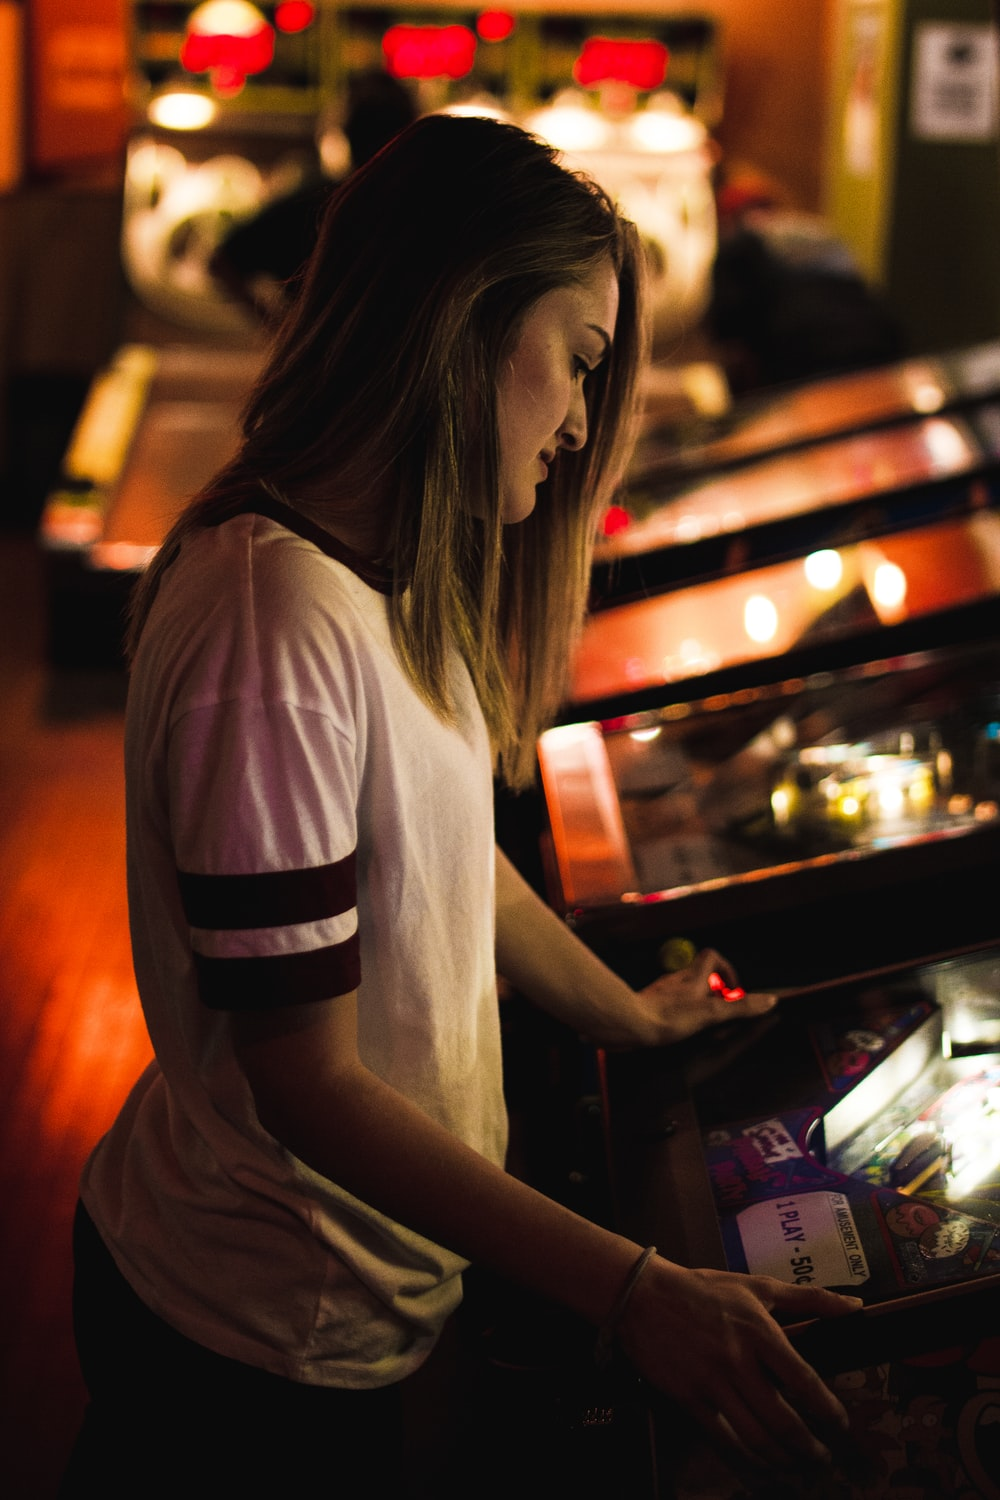 woman in white and black shirt standing in front of arcade machine